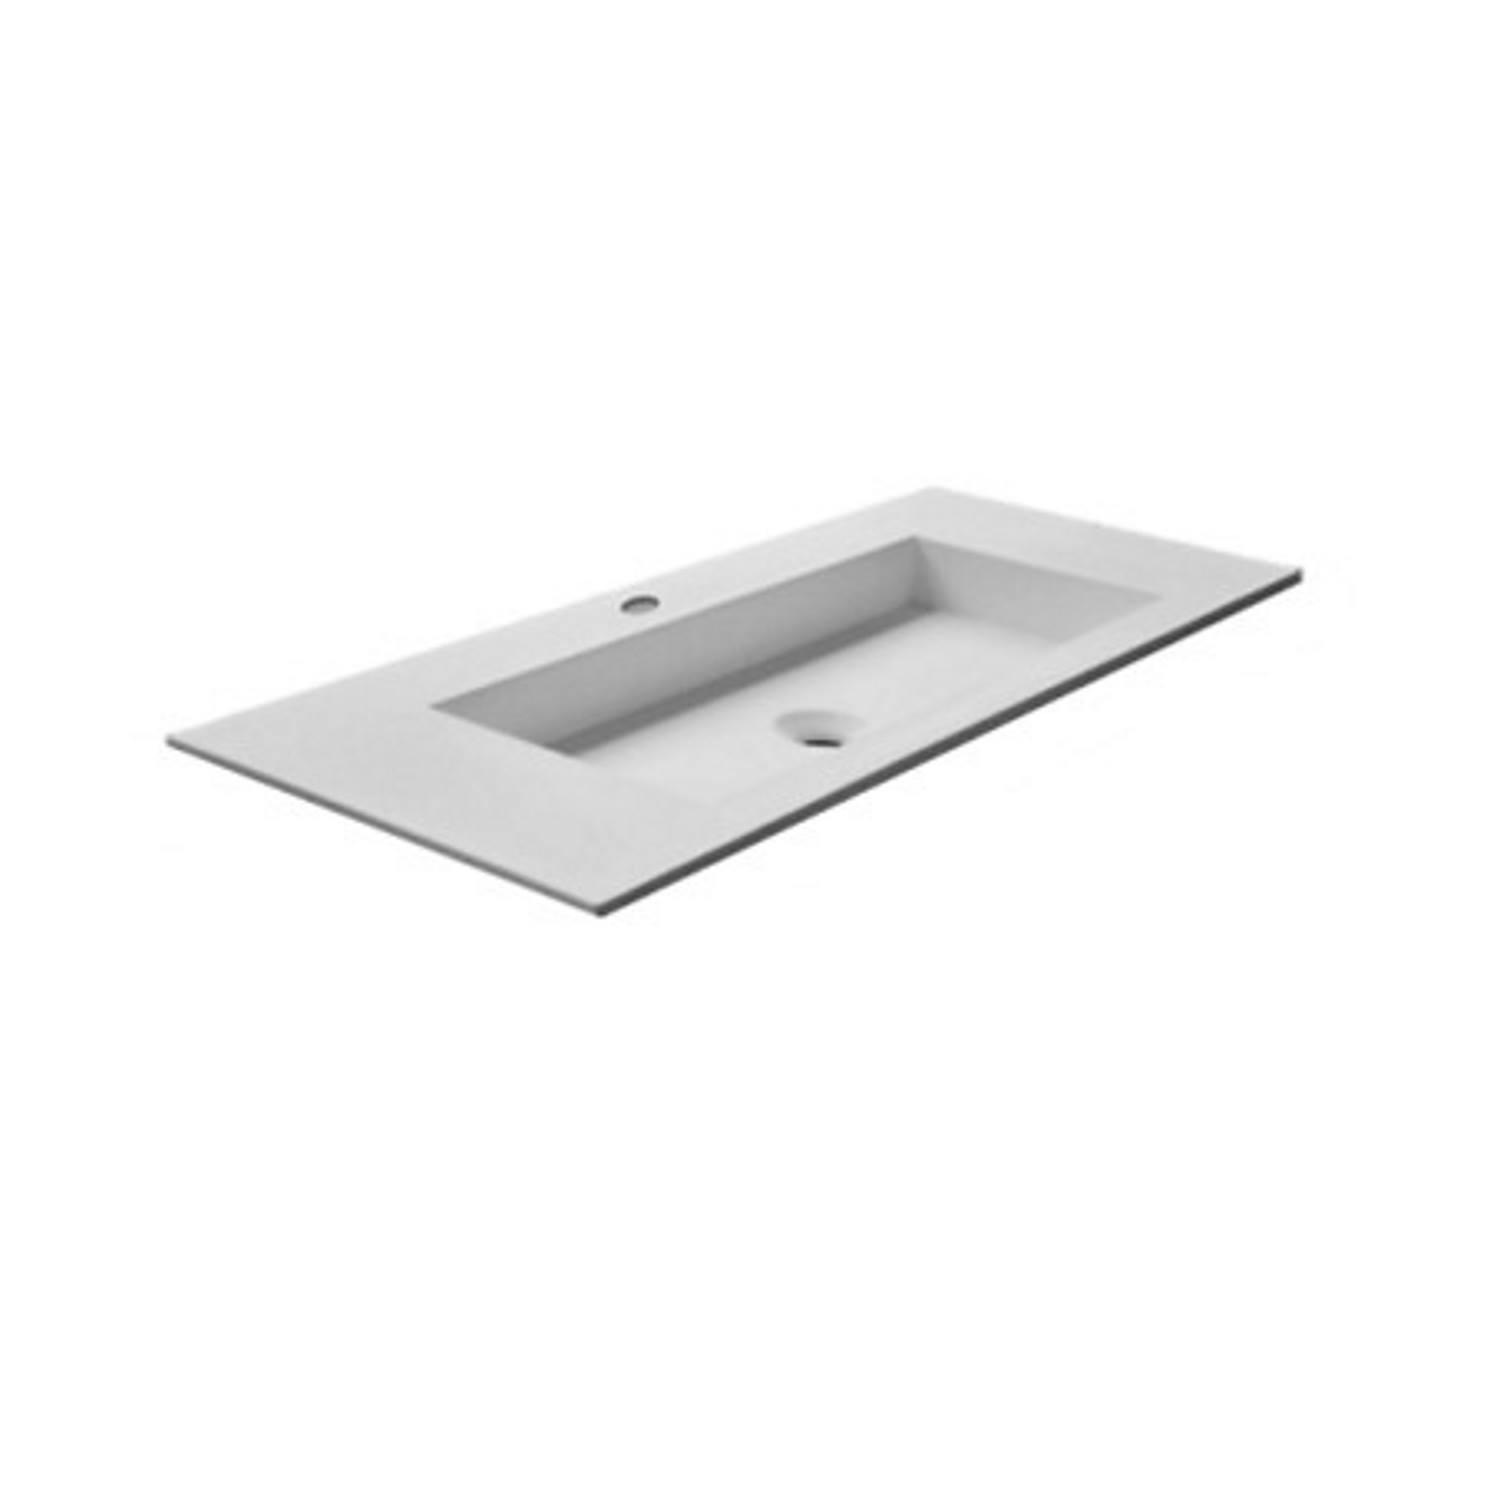 Wastafel Boss & Wessing 1 Kraangat 45.5x57 cm Solid Surface Wit